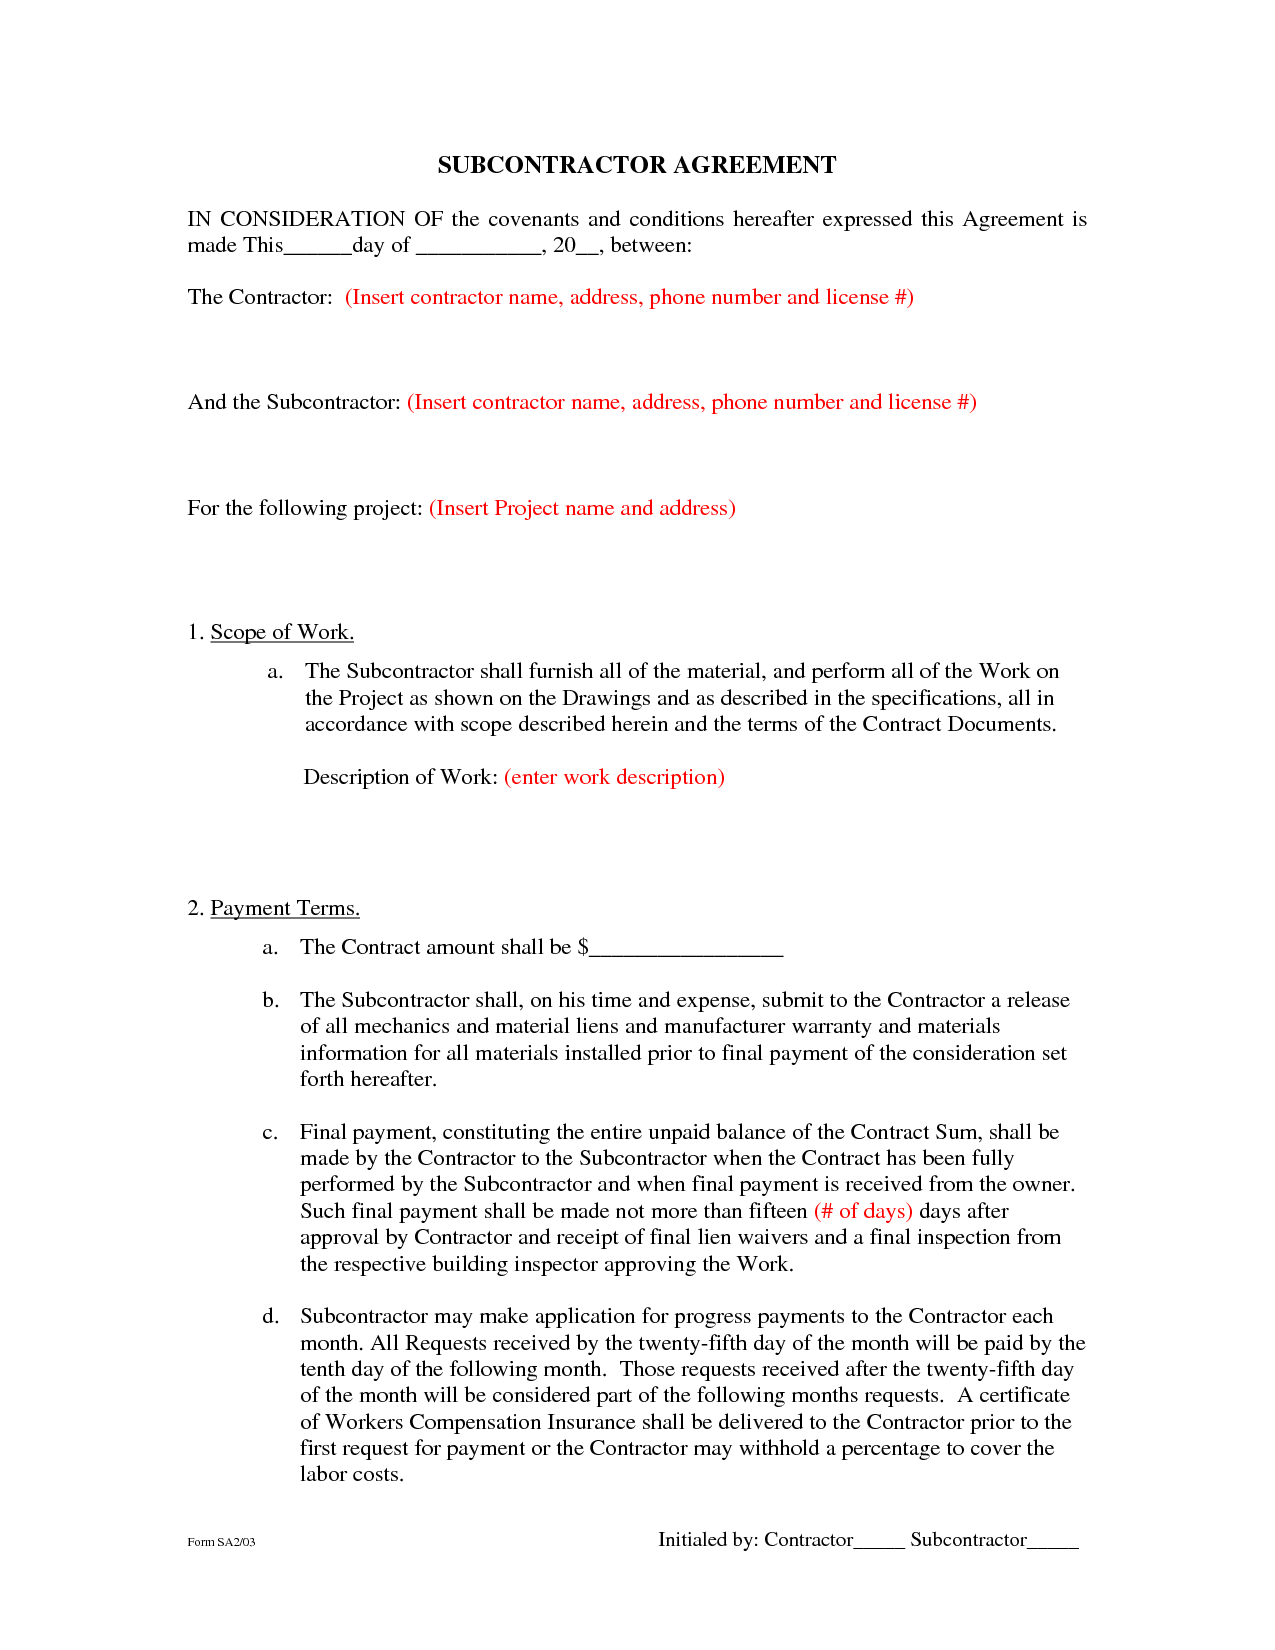 Subcontractor Agreement Forms by BeunaventuraLongjas – Subcontractor Agreements